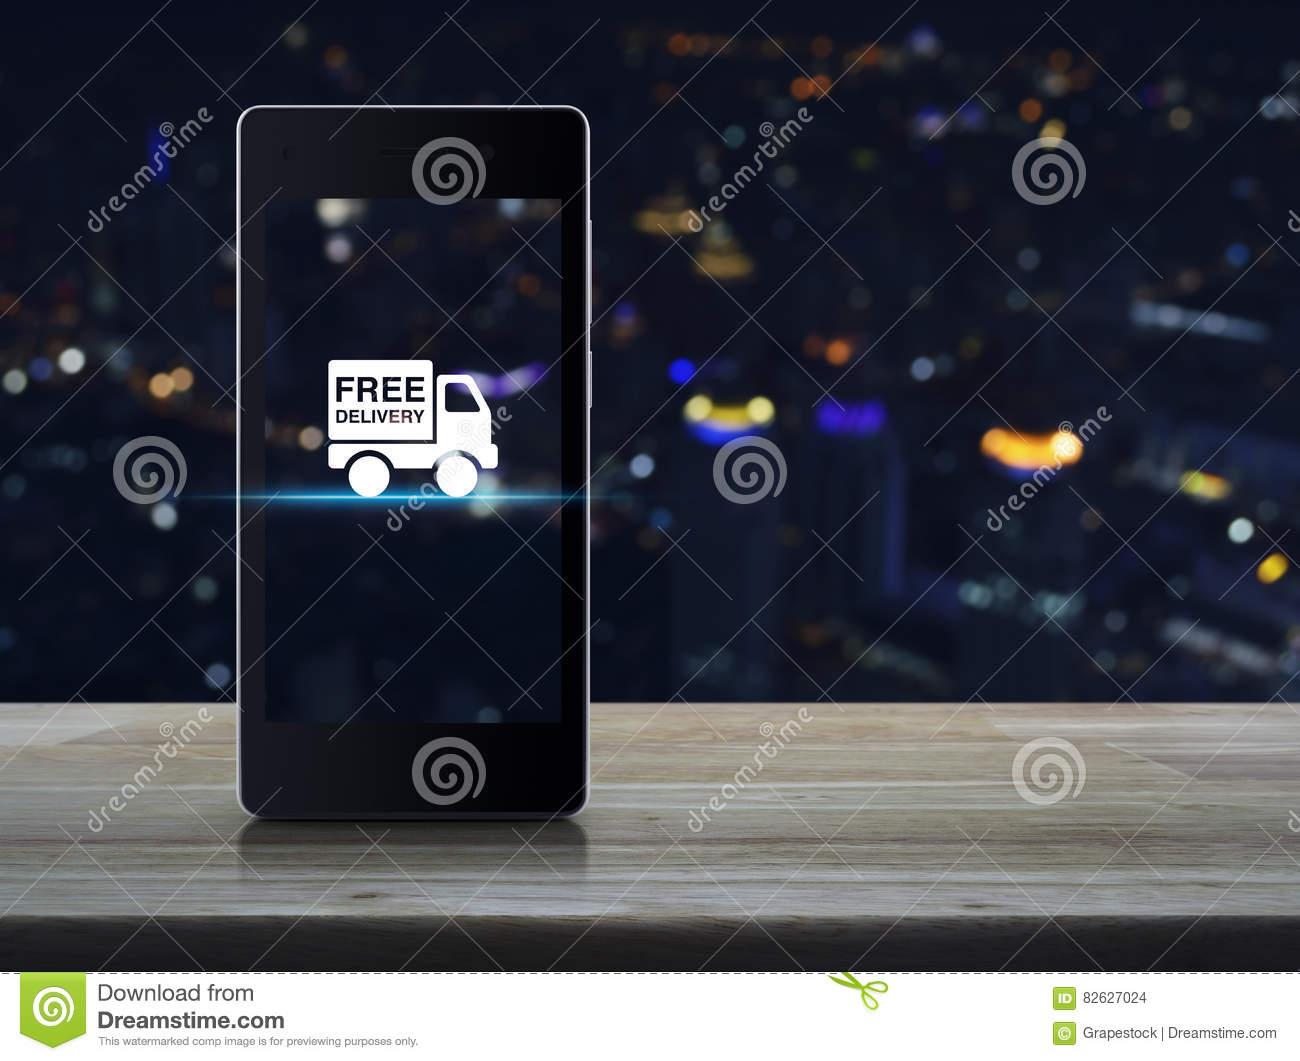 hight resolution of free delivery truck icon on modern smart phone screen on wooden table in front of blurred light city tower transportation business concept